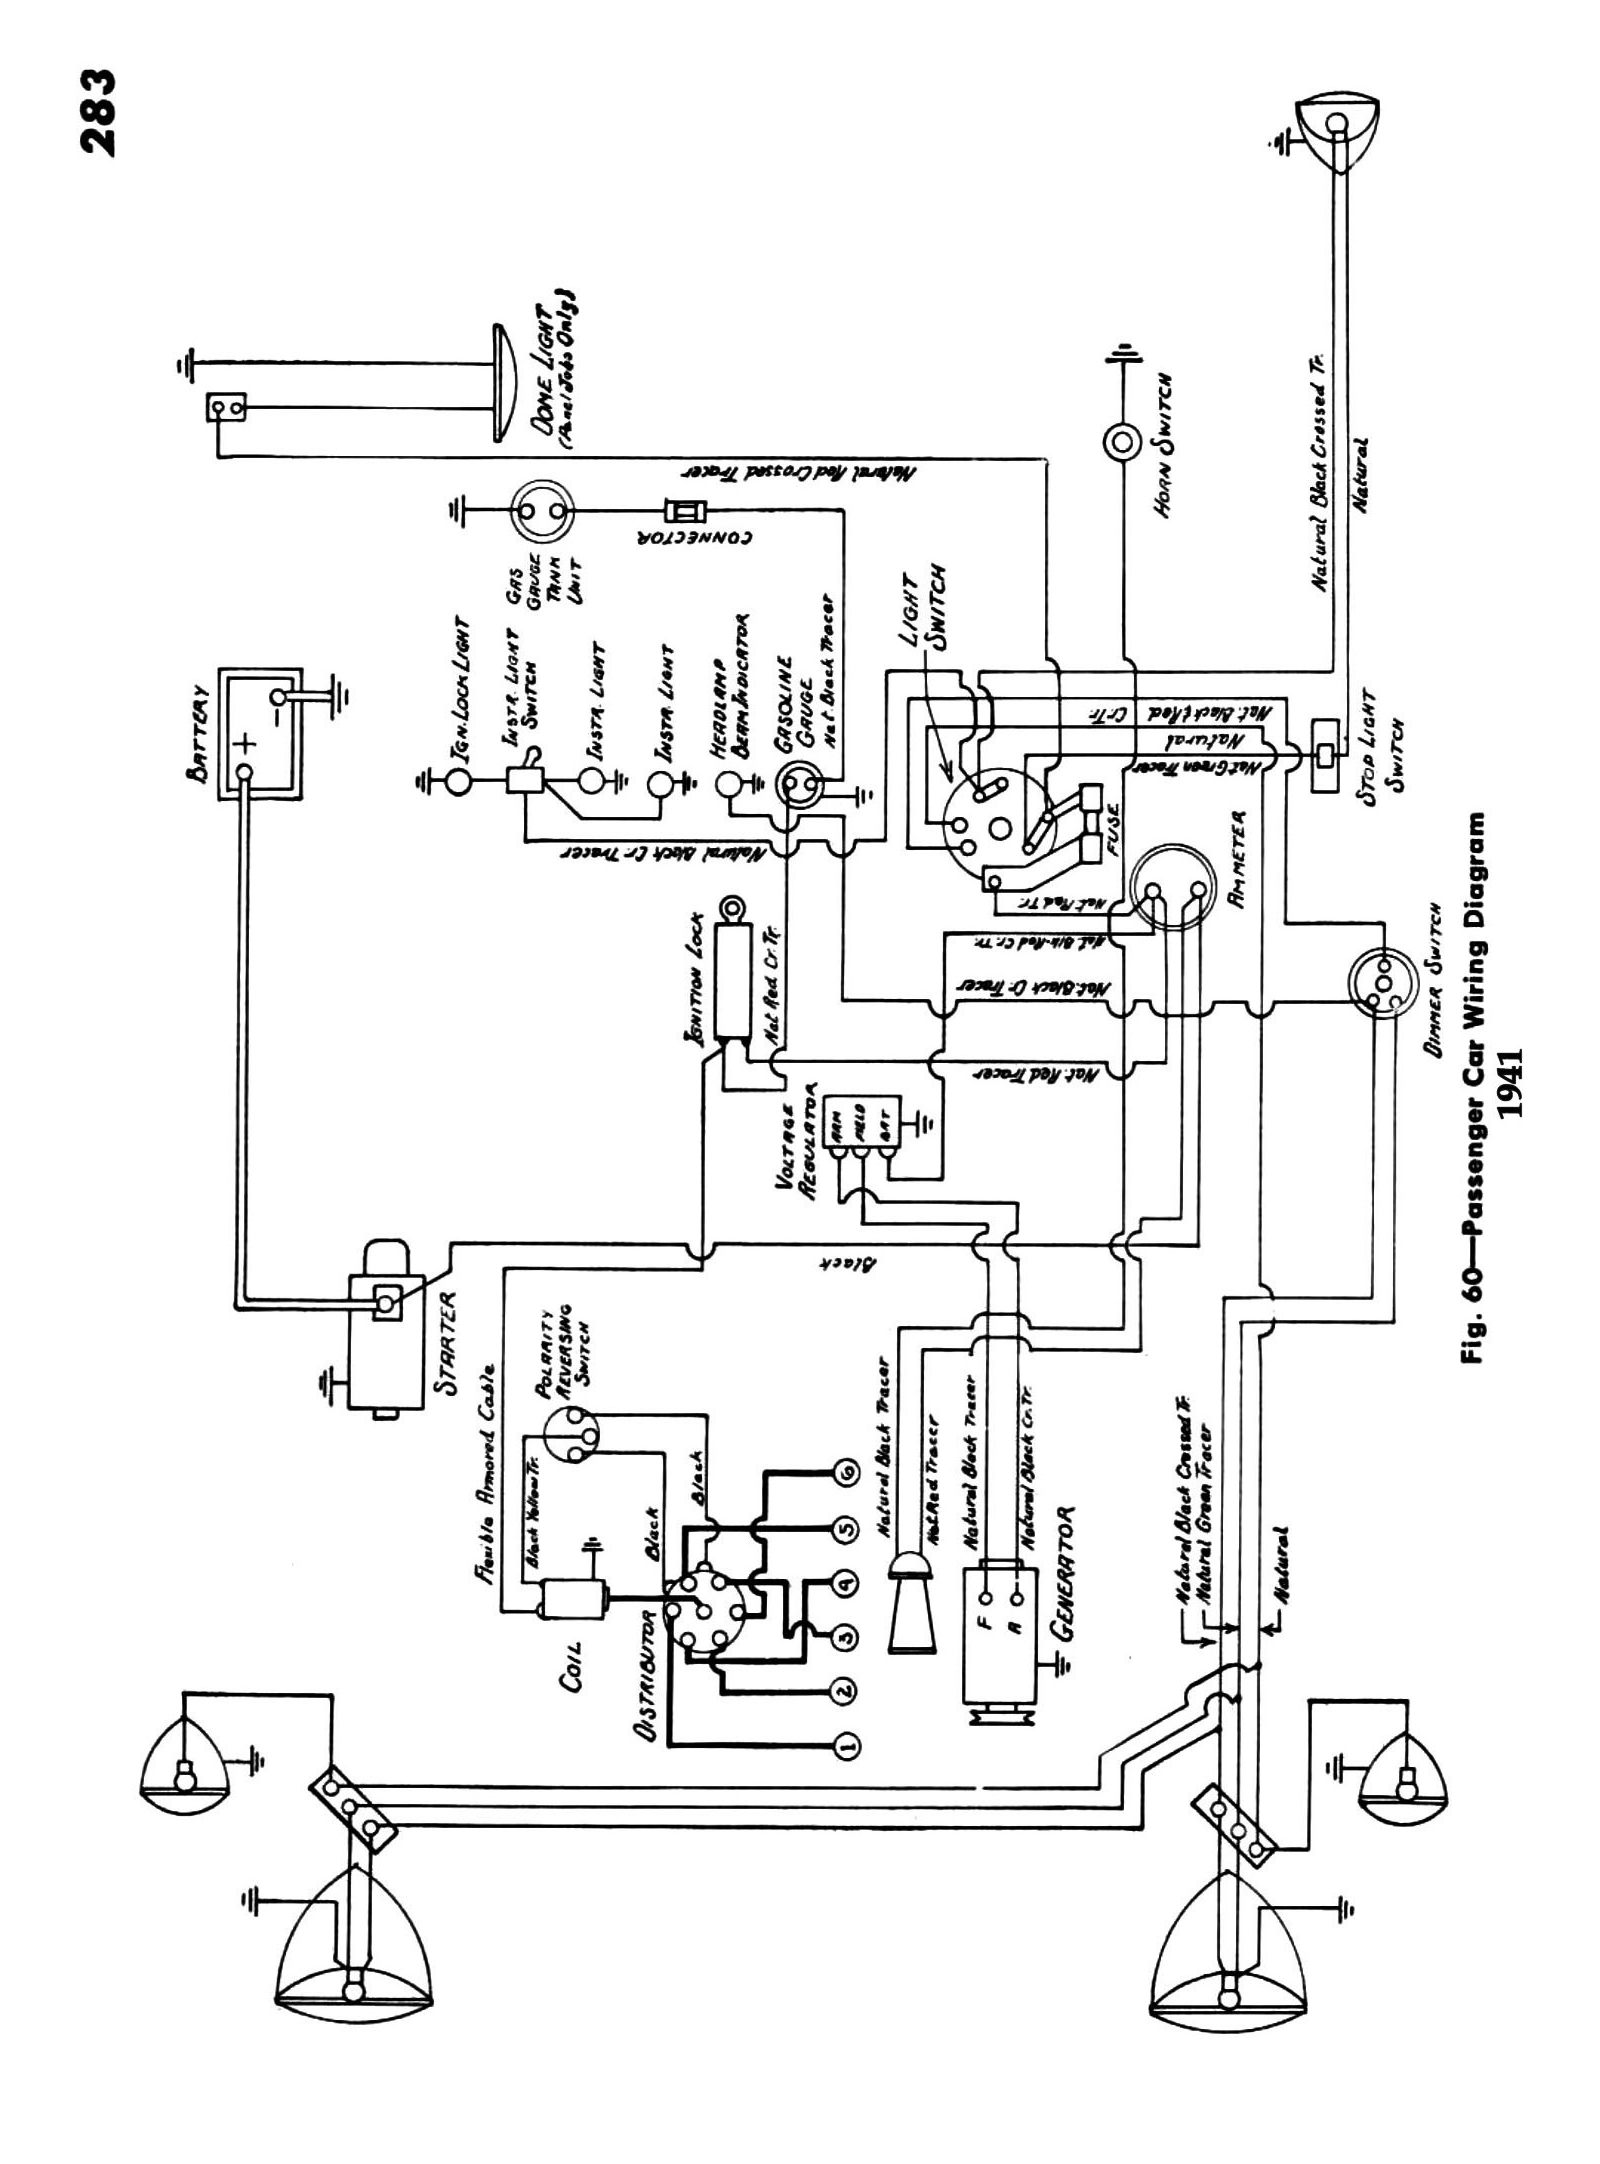 Chevy wiring diagrams 1941 passenger car wiring asfbconference2016 Image collections